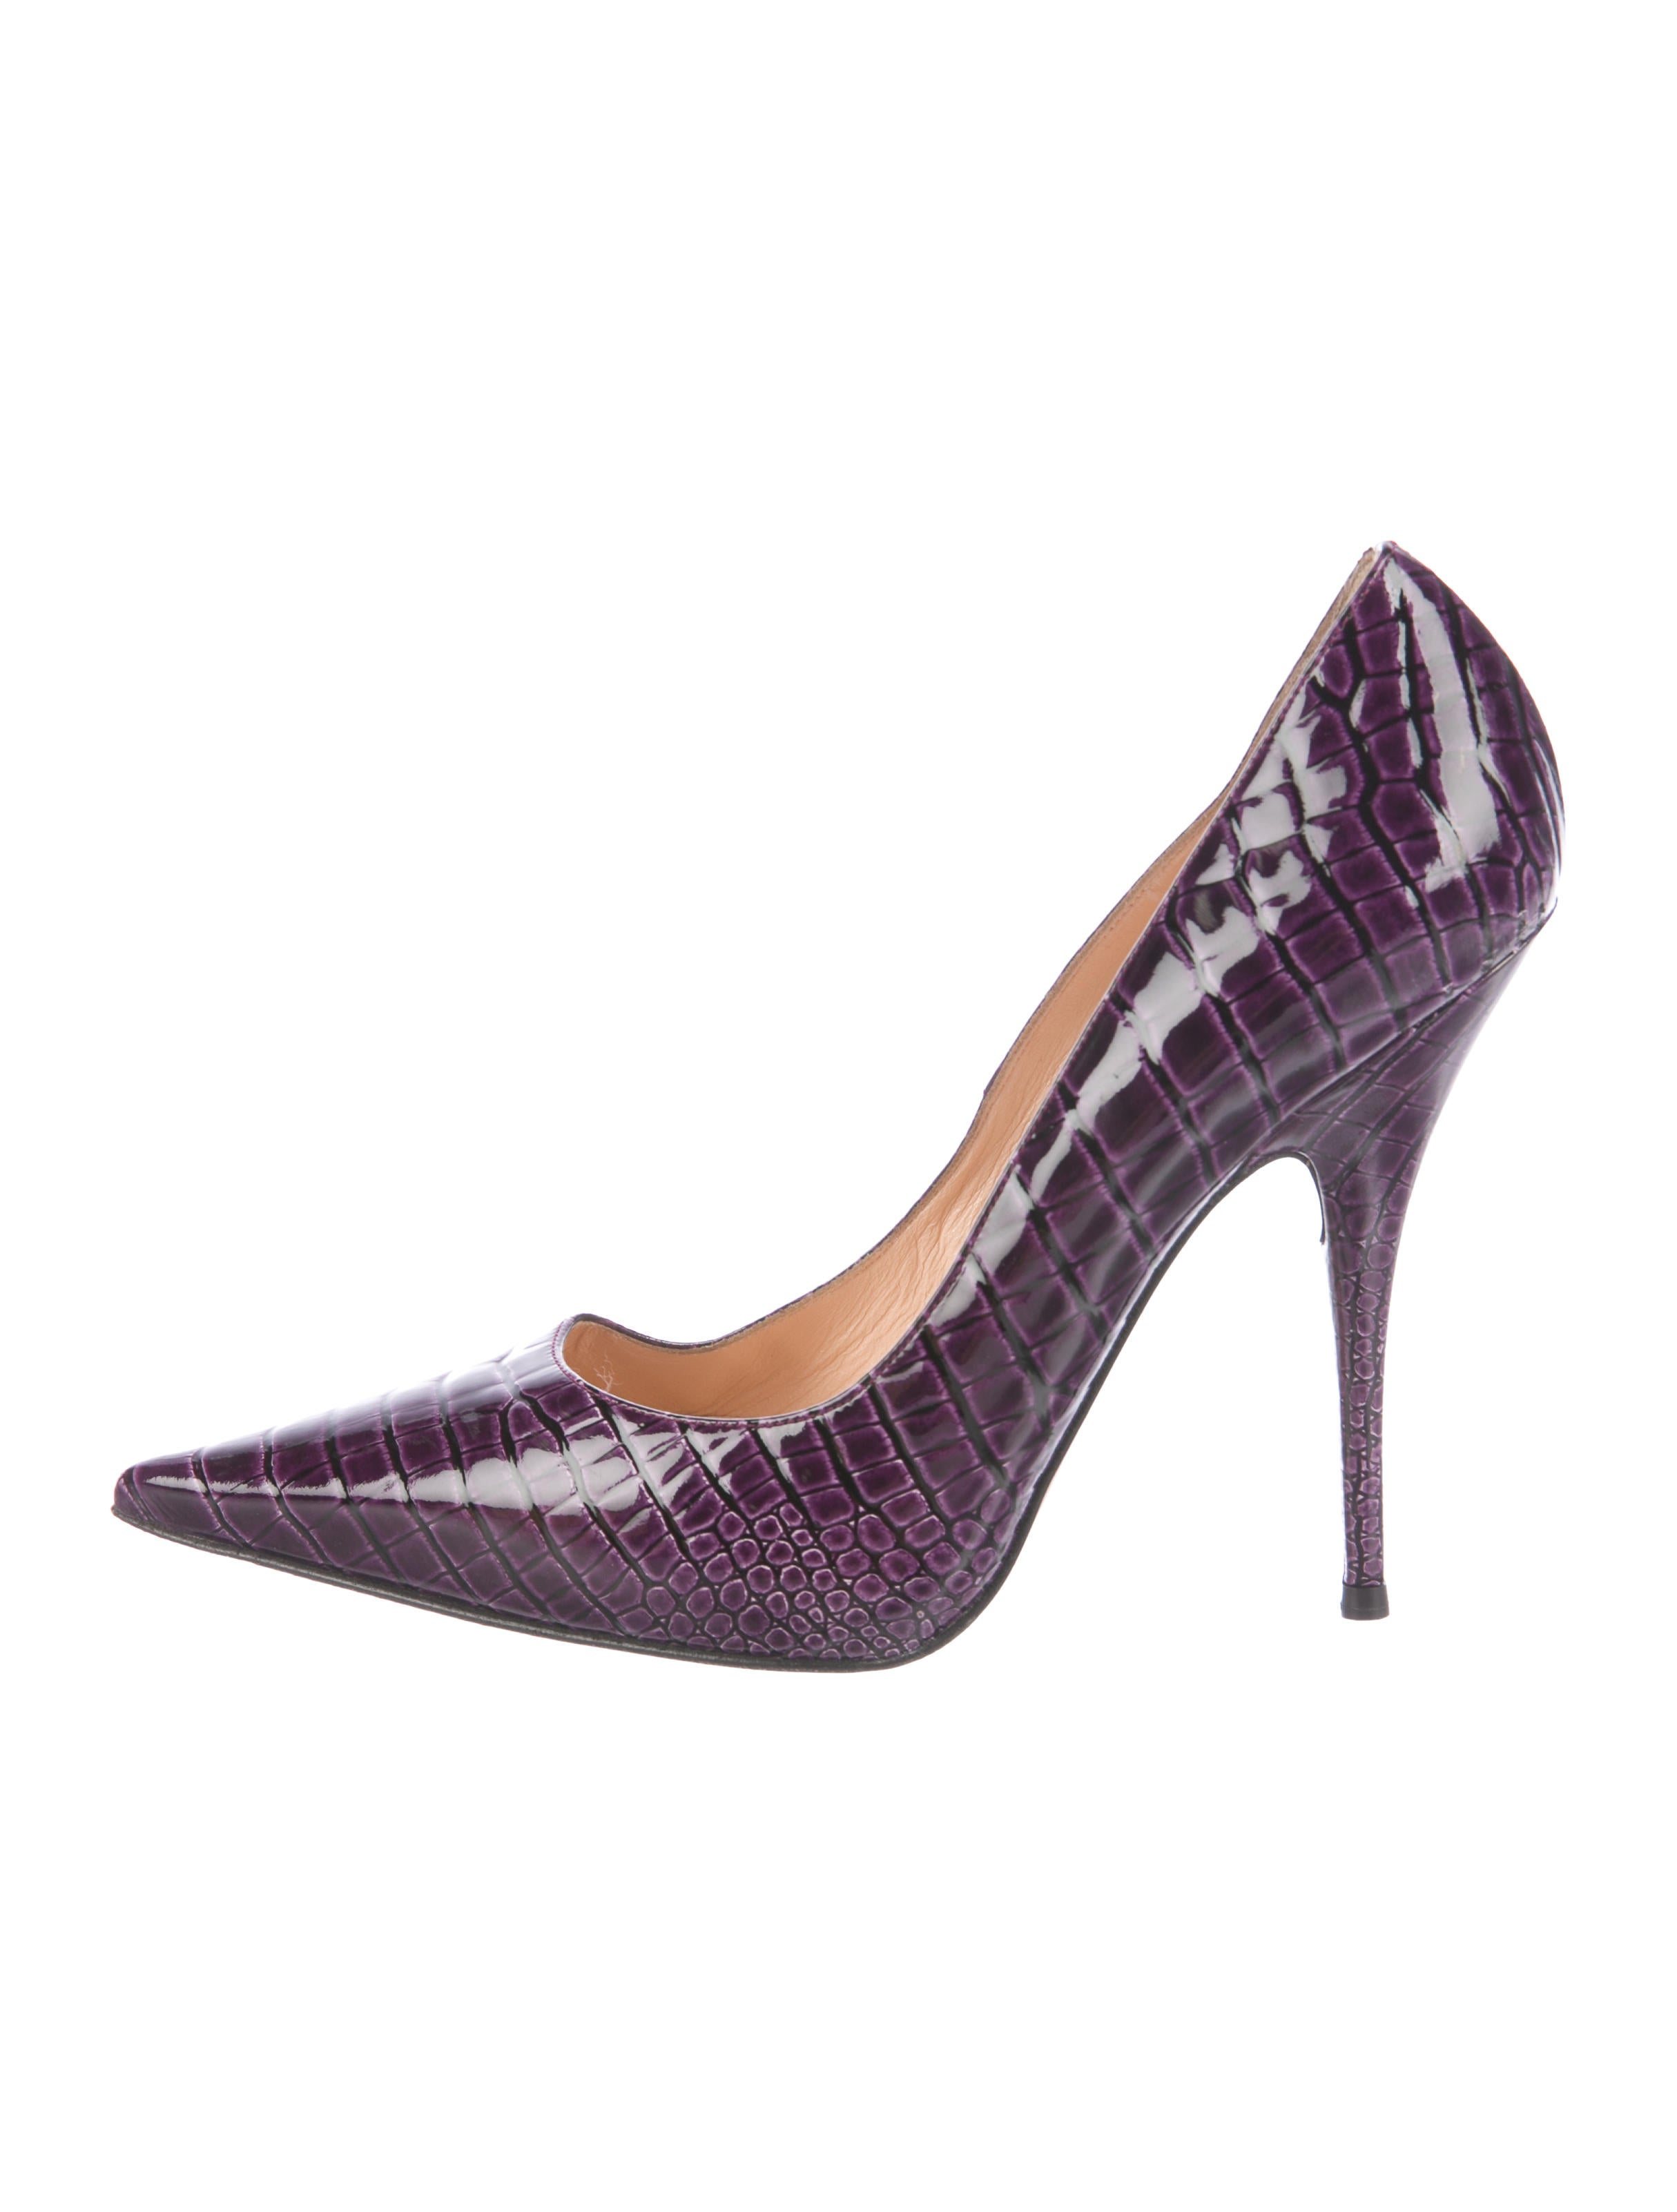 free shipping popular buy cheap store Casadei Embossed Pointed-Toe Pumps cheap sale pay with visa cWiPg